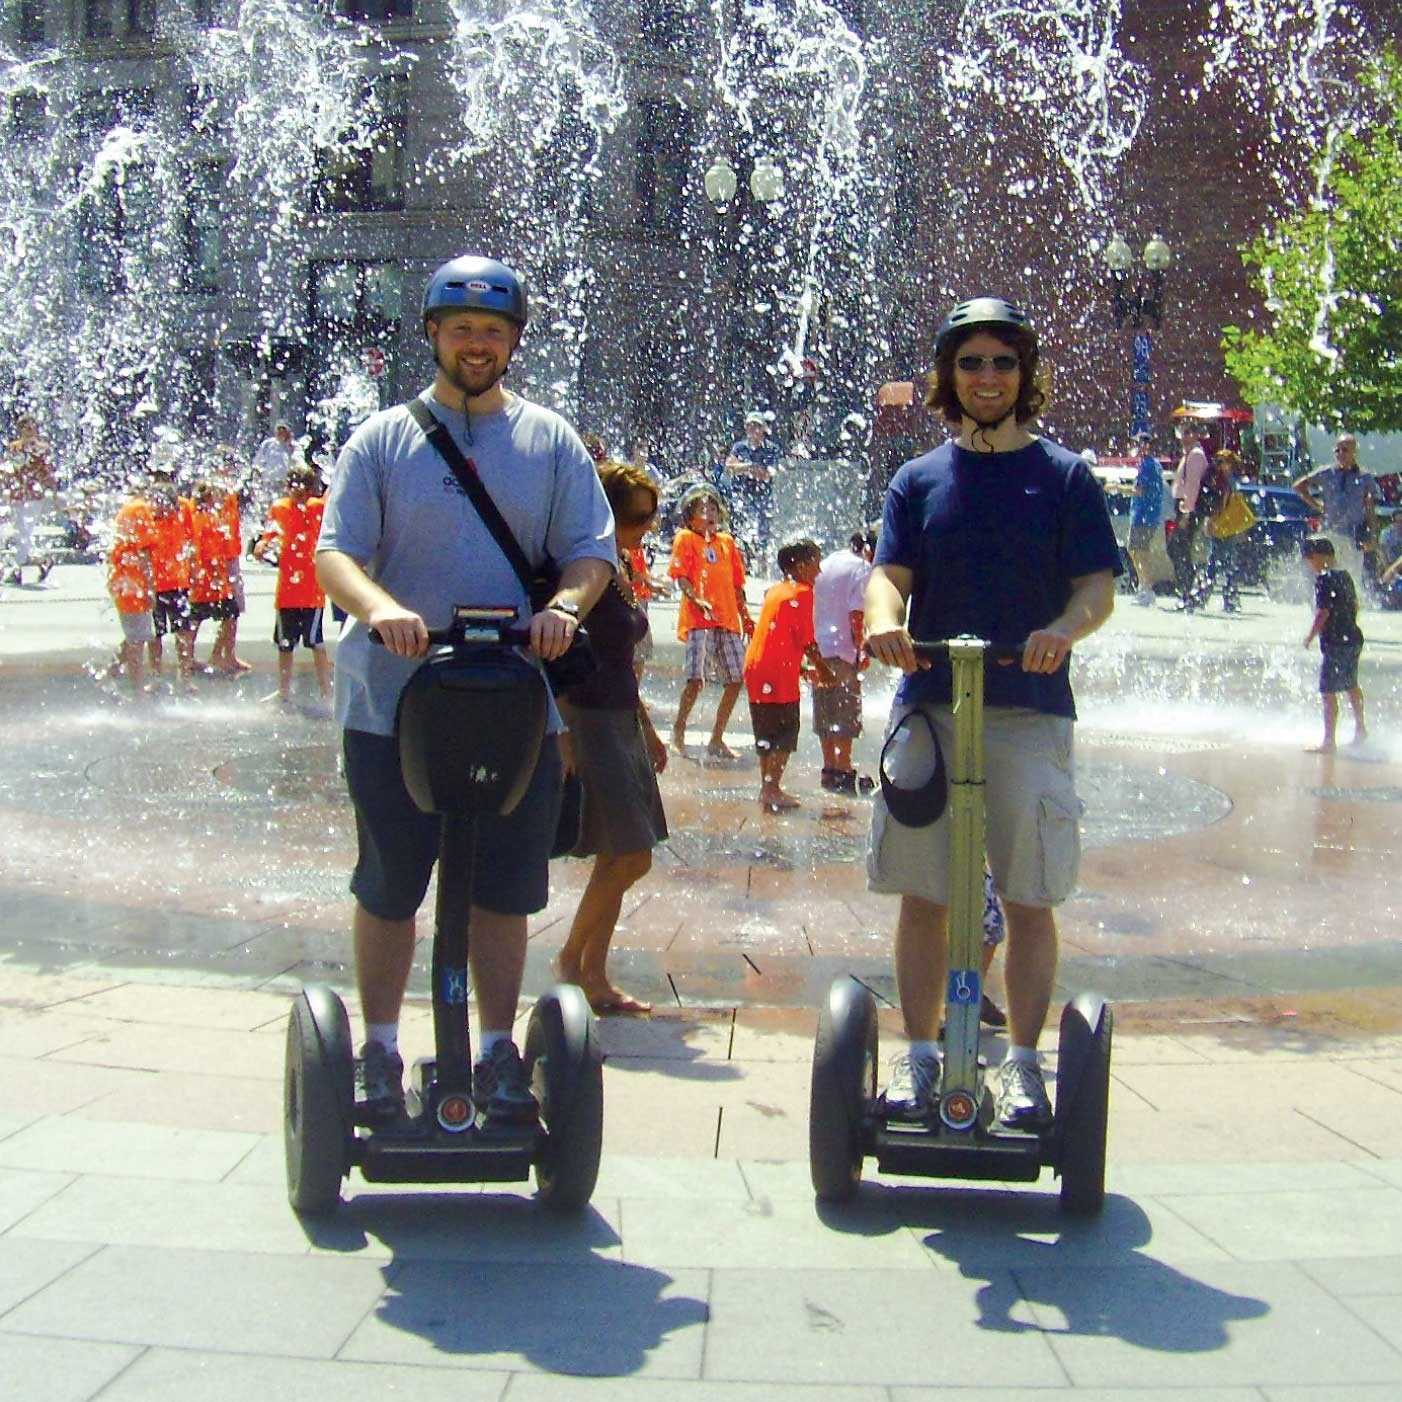 1-hour Segway Tour of Boston and the Charles River